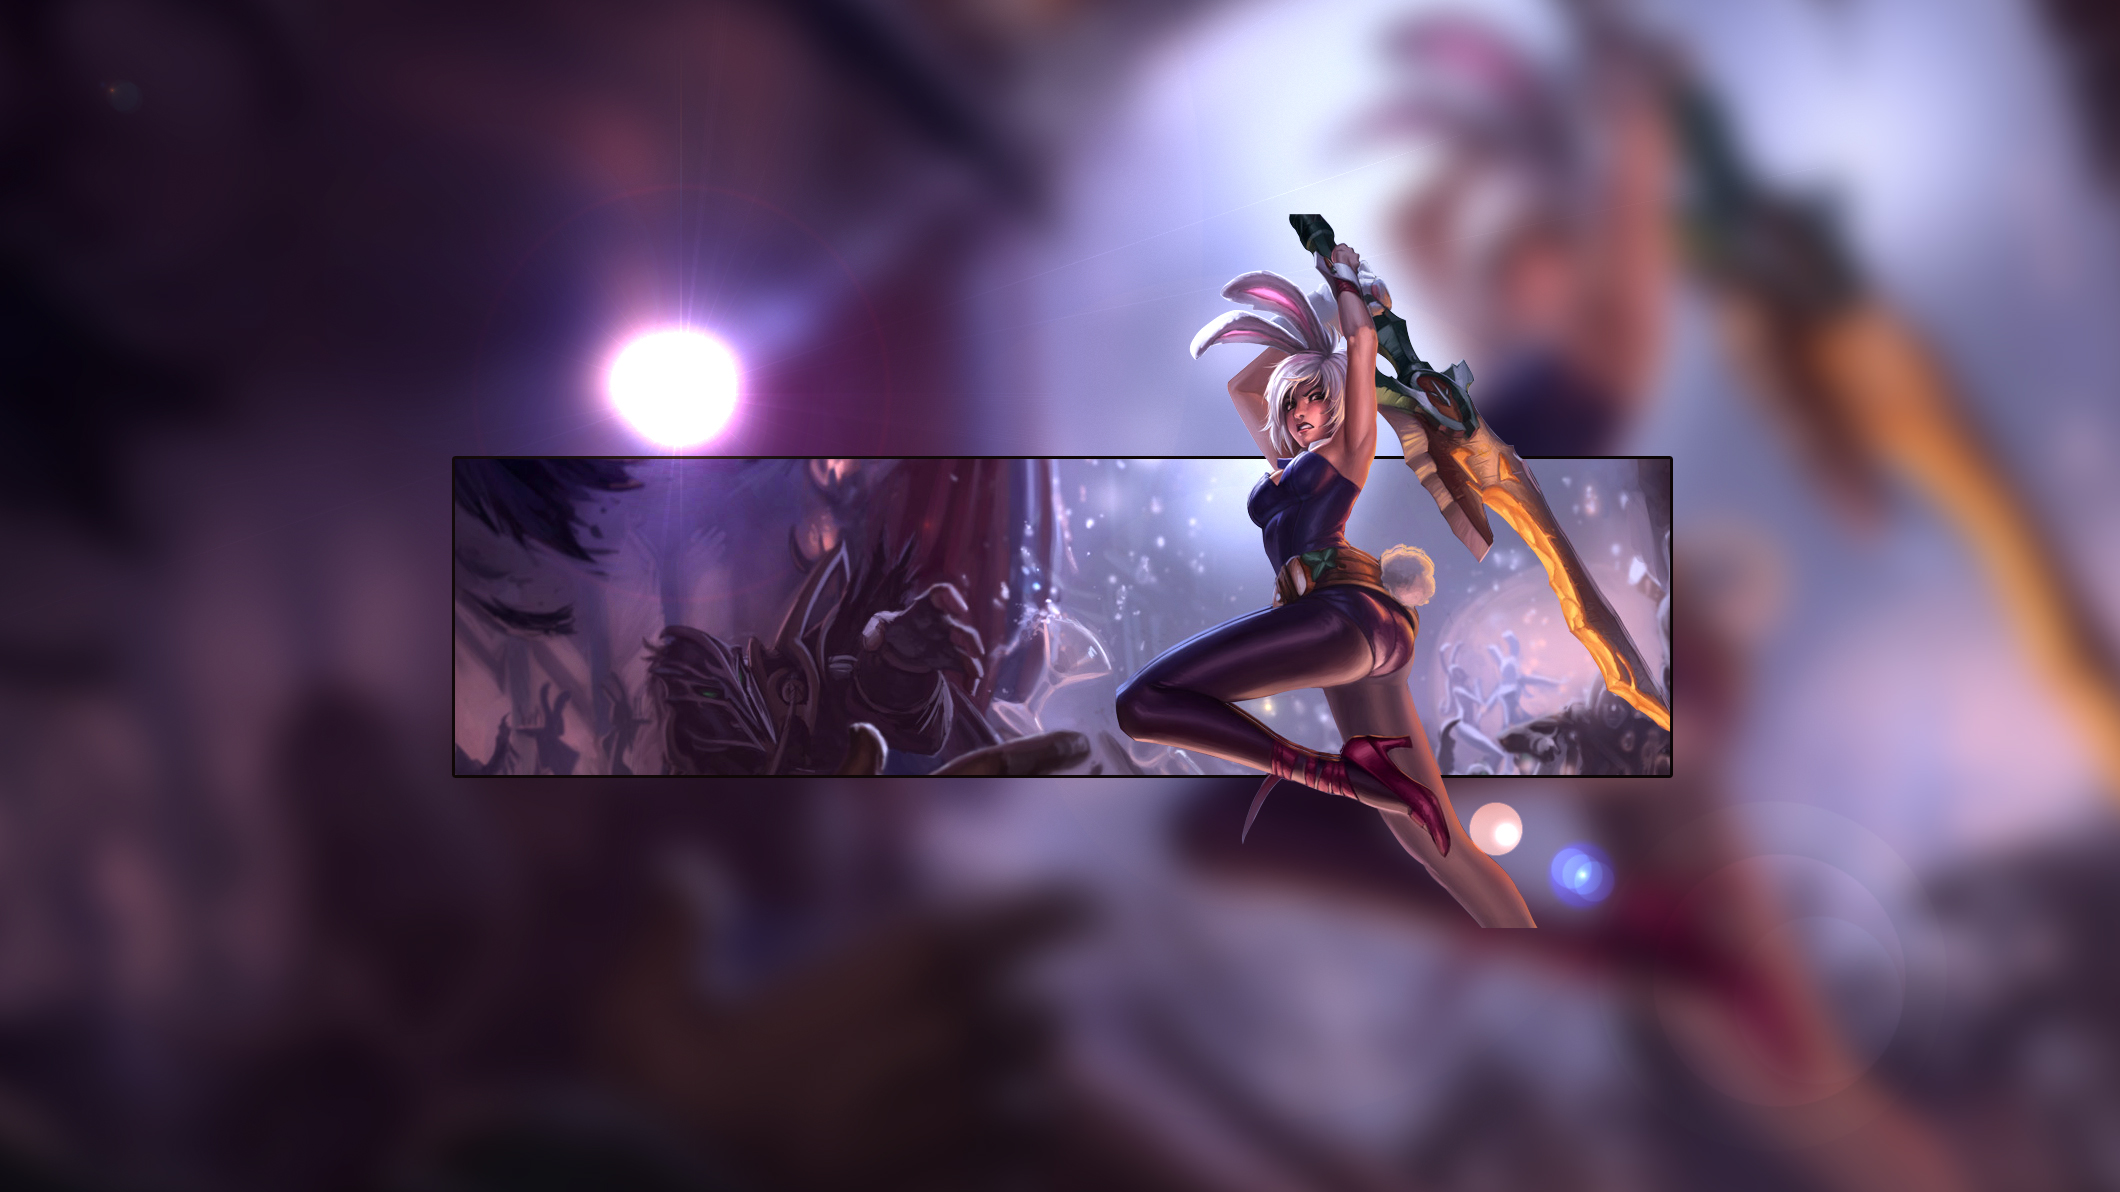 battle bunny riven lolwallpapers